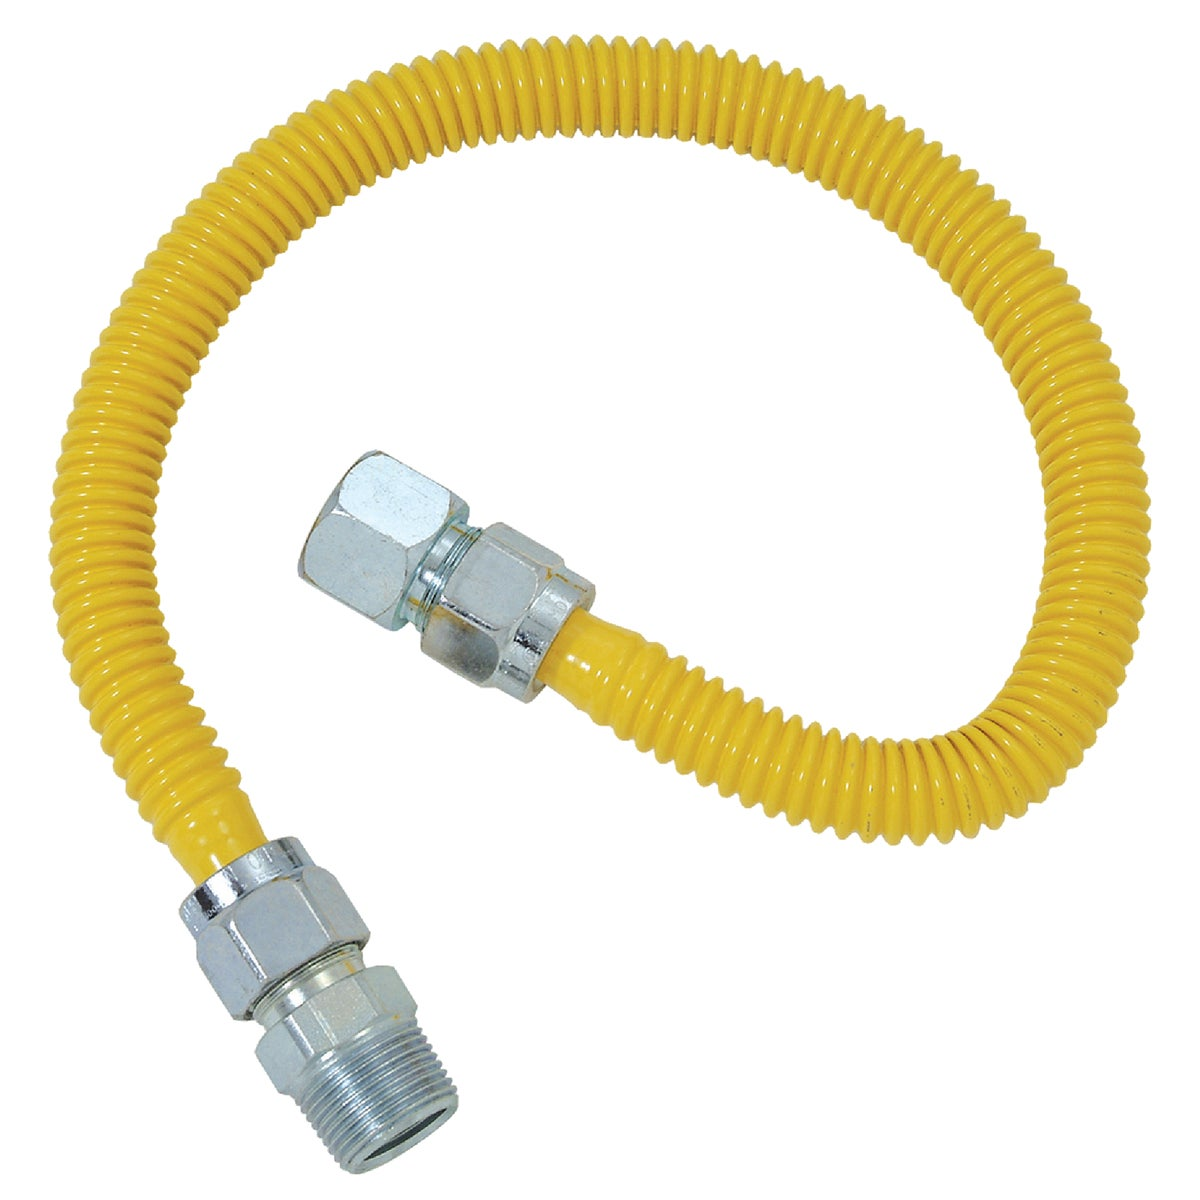 5/8X60 GAS CONNECTOR - CSSC21-60P by Brass Craft